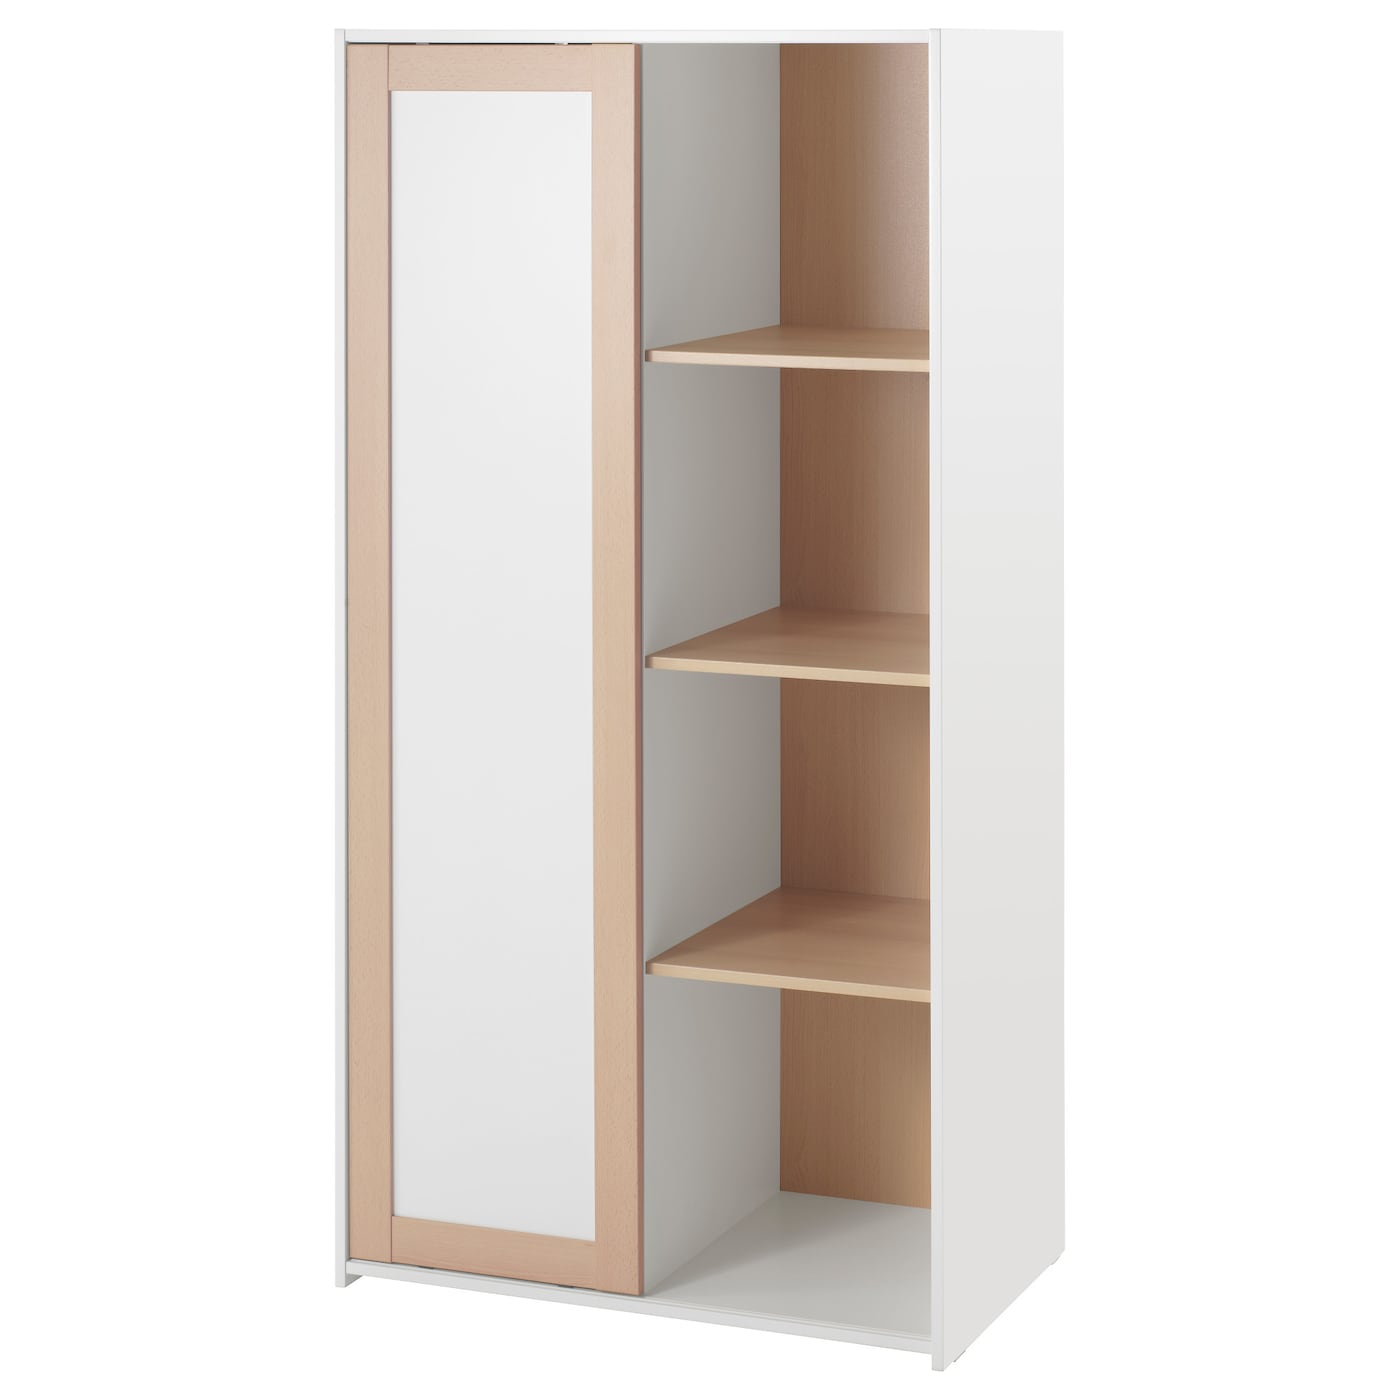 Children 39 s wardrobes nursery wardrobes ikea - Portes dressing ikea ...